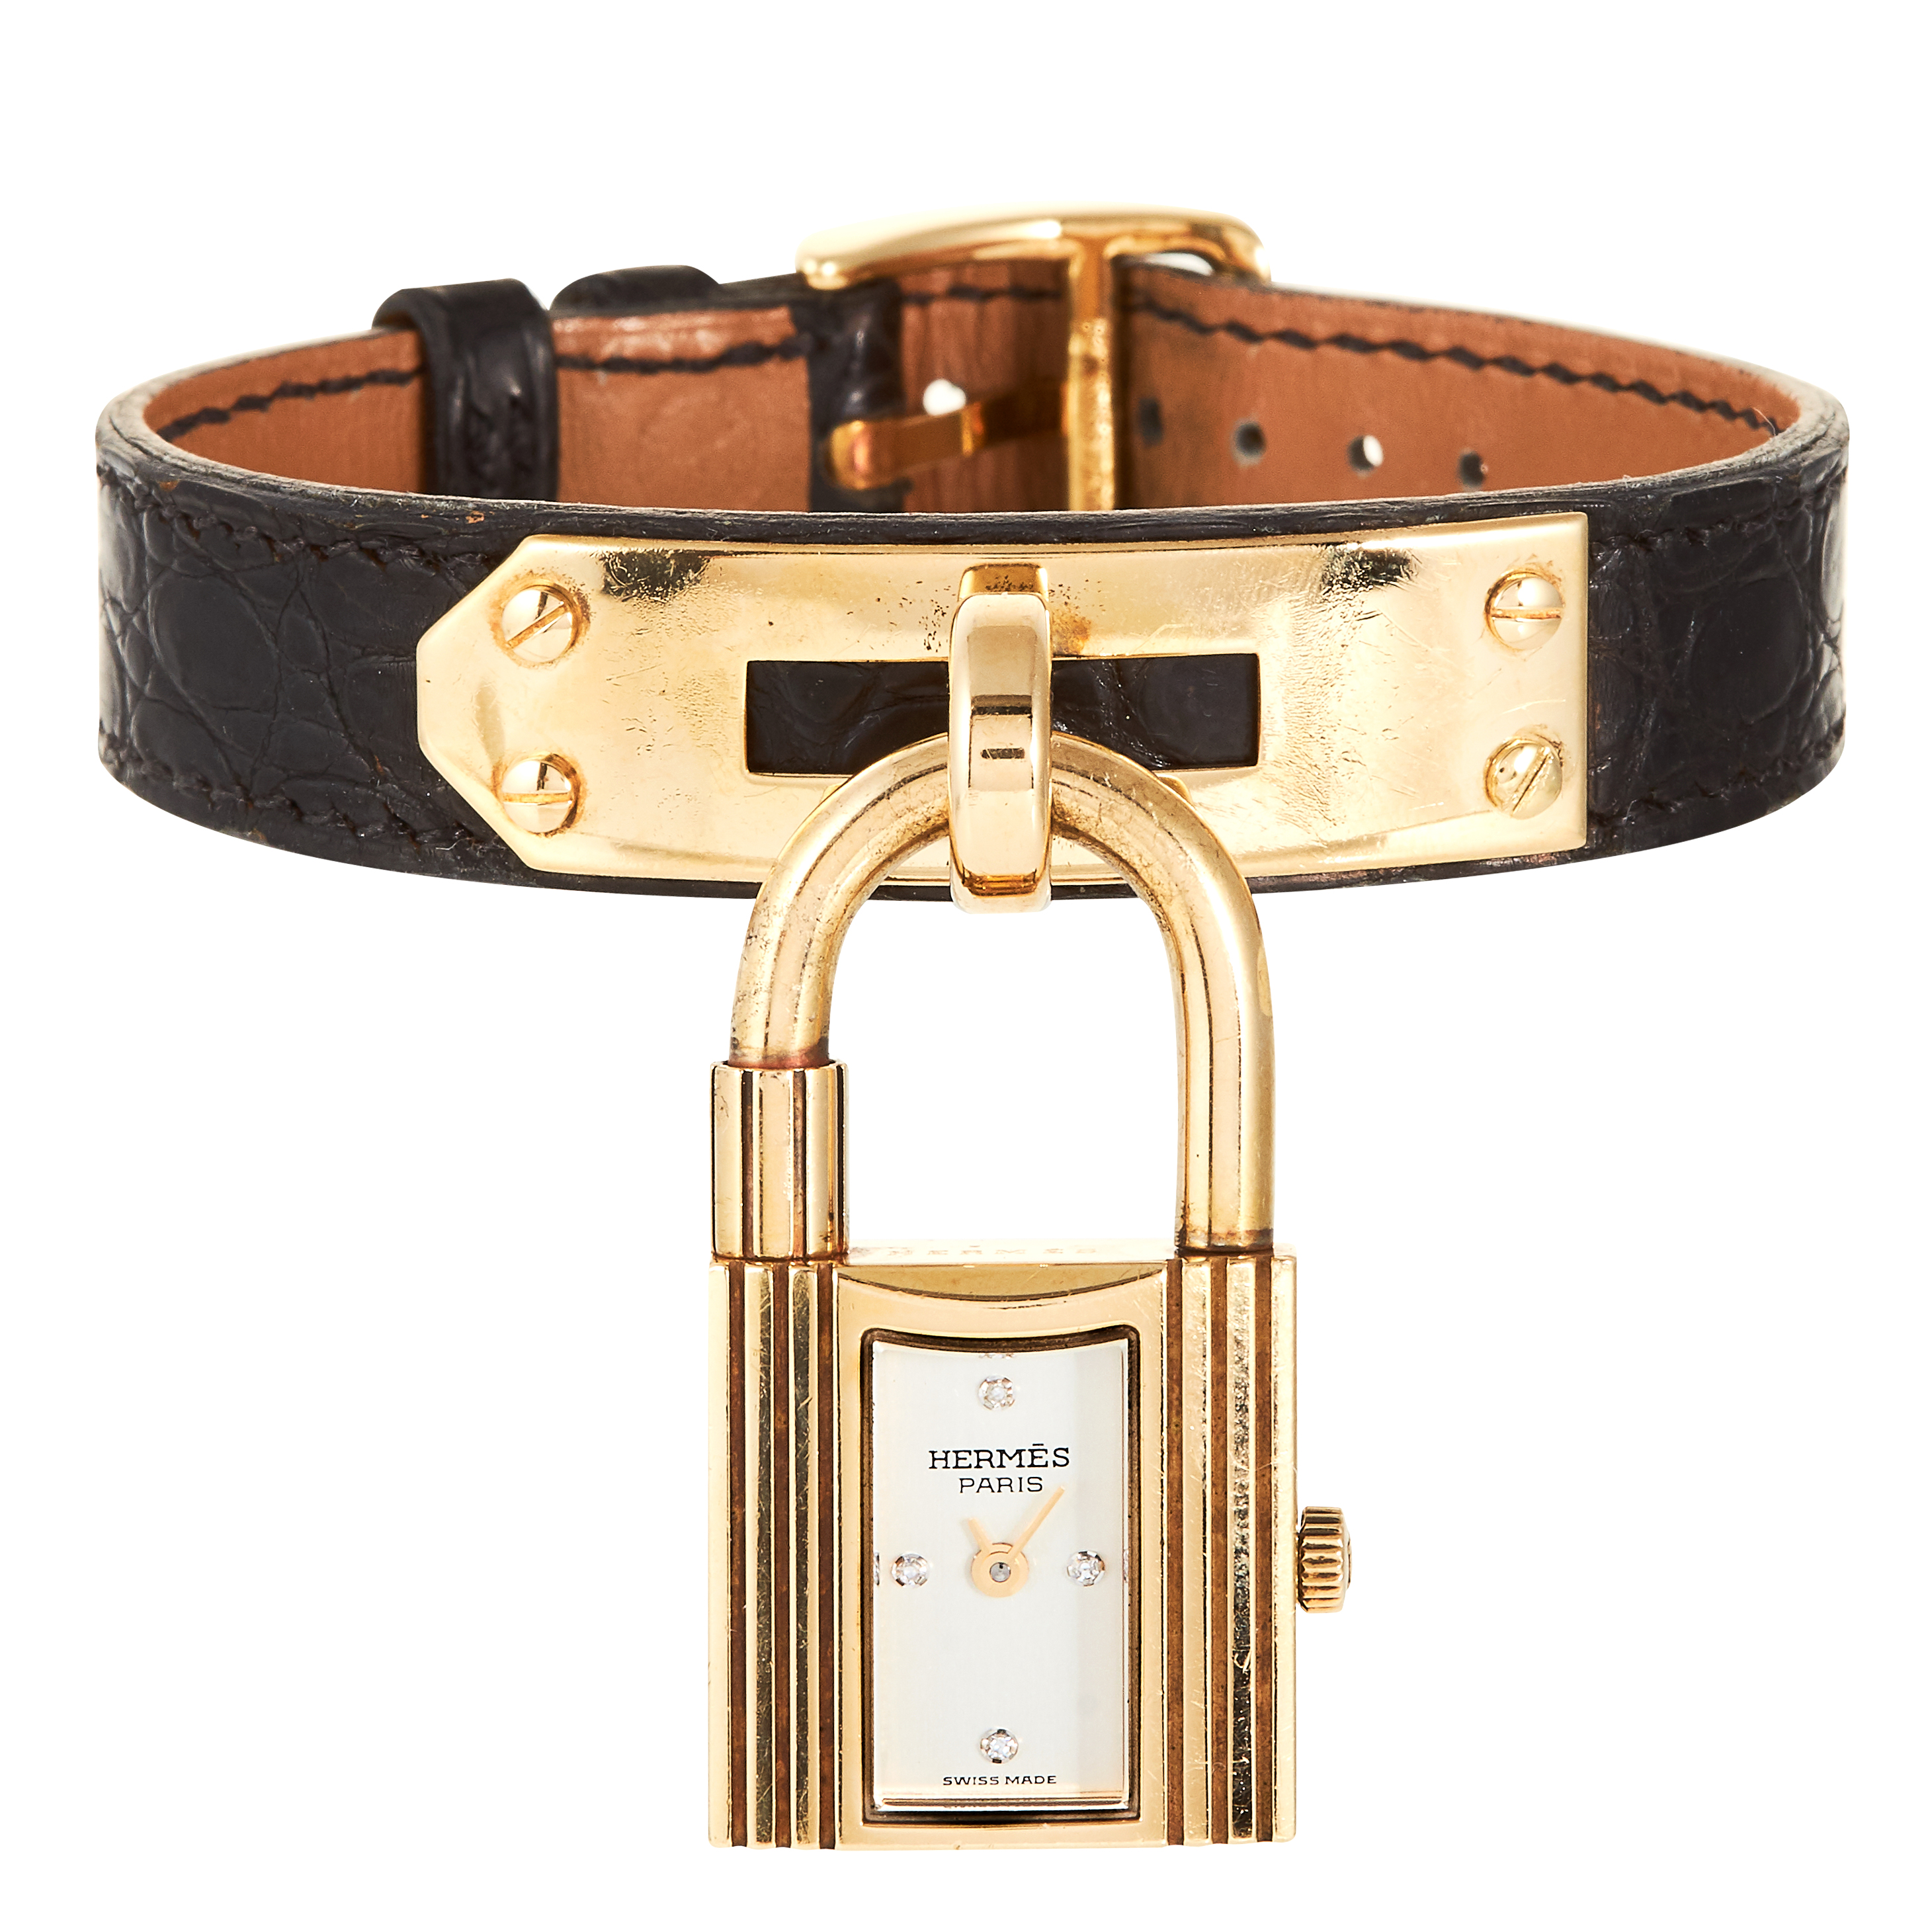 A KELLY BAG DIAMOND AND LEATHER PADLOCK WATCH, HERMES in 18ct yellow gold, designed as a padlock